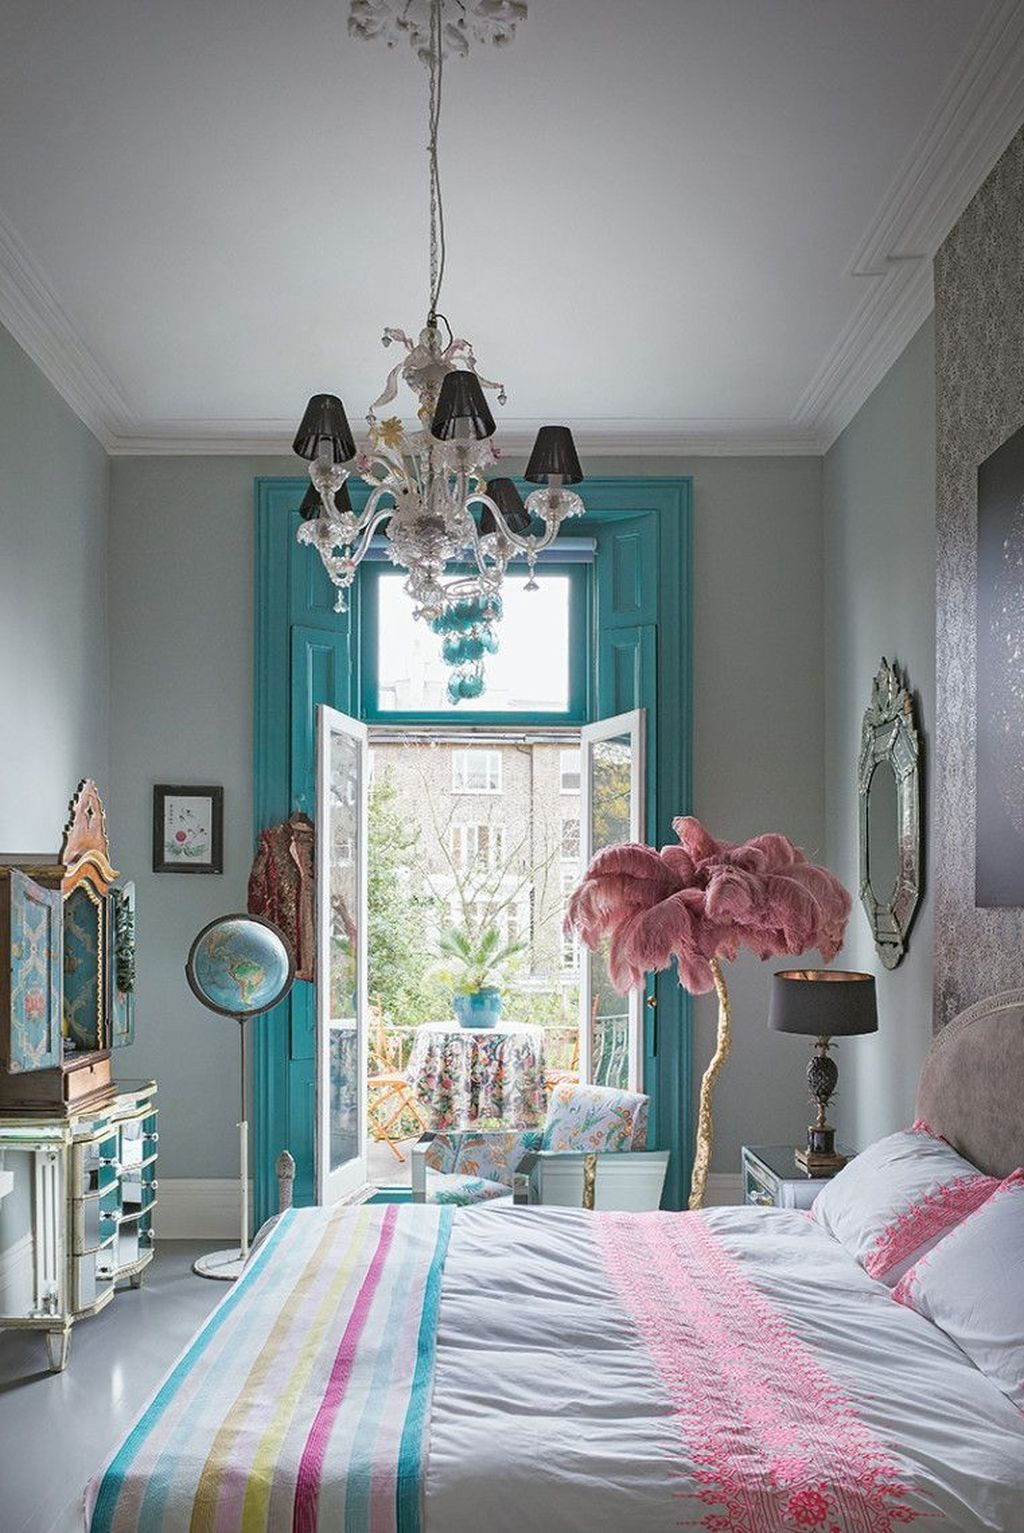 bedroom, white floor, light grey wall, glass cabinet, floery chair, acrylic side table, black table lamp, bed, chandelier